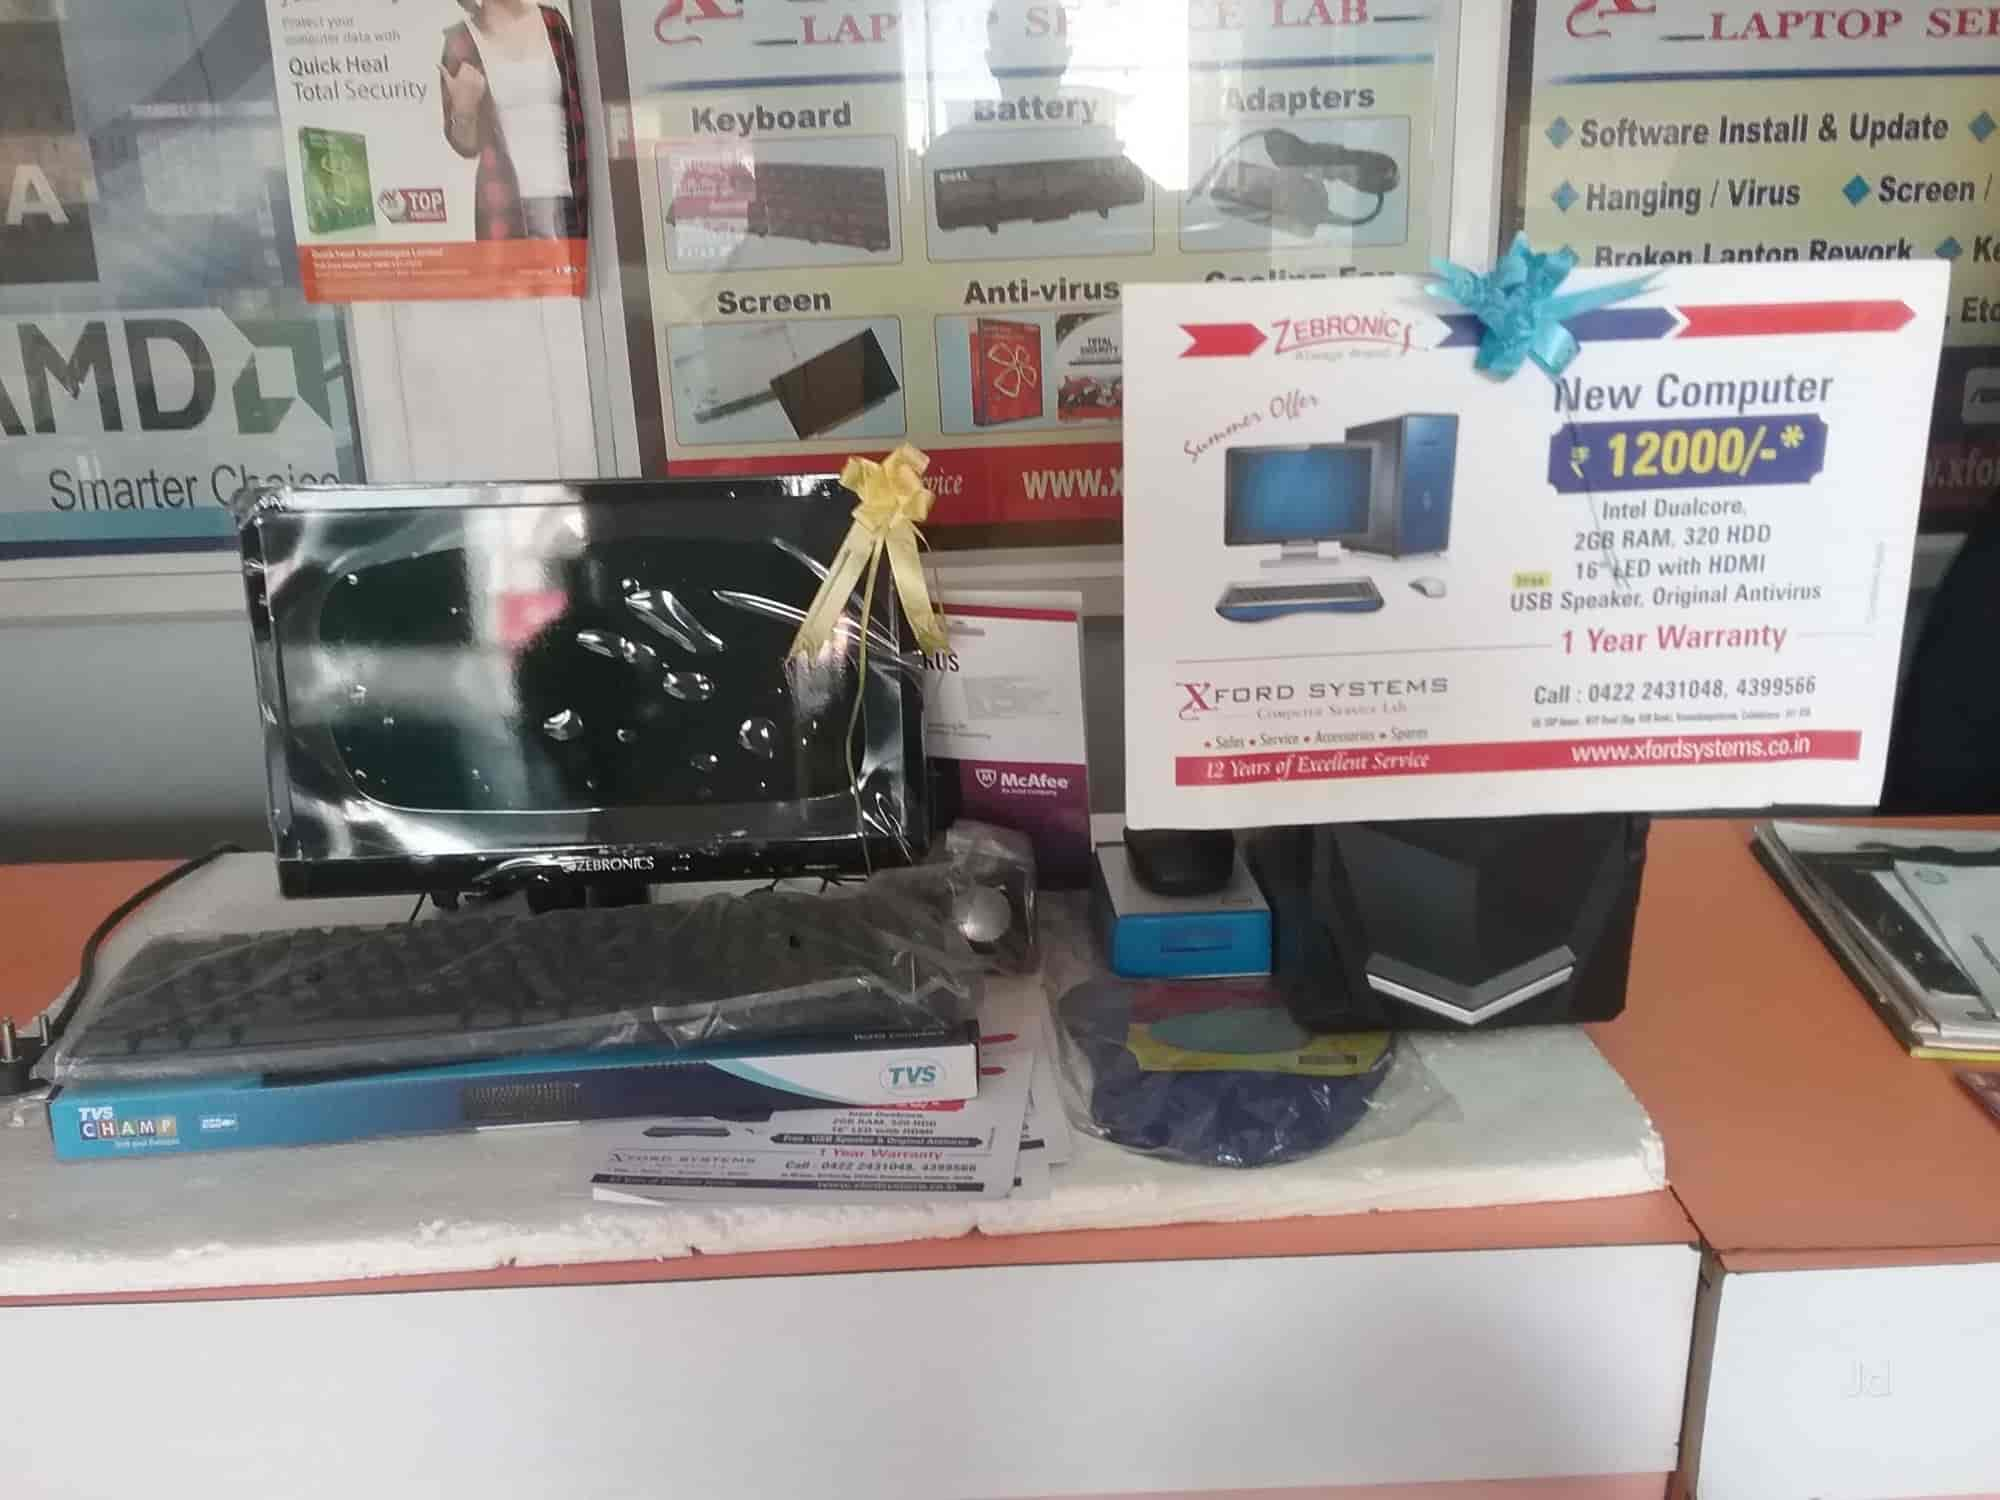 X Ford Systems Photos Kavundampalayam Coimbatore Pictures Security Laptop Accessory Dealers